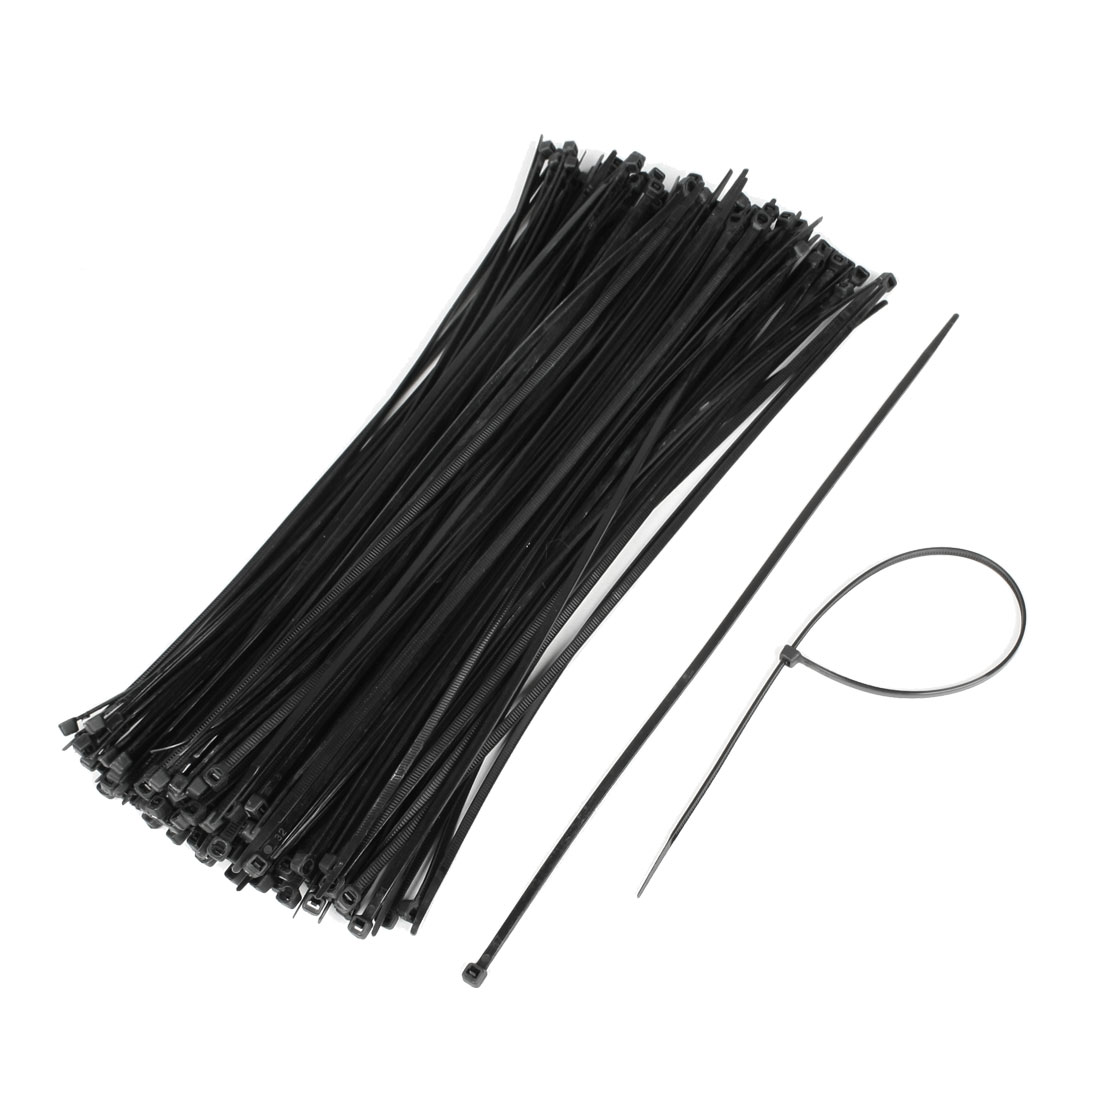 Unique Bargains 200 Pcs Self Locking Nylon Cable Wire Zip Tie Wrap Black 3.5mm x 300mm